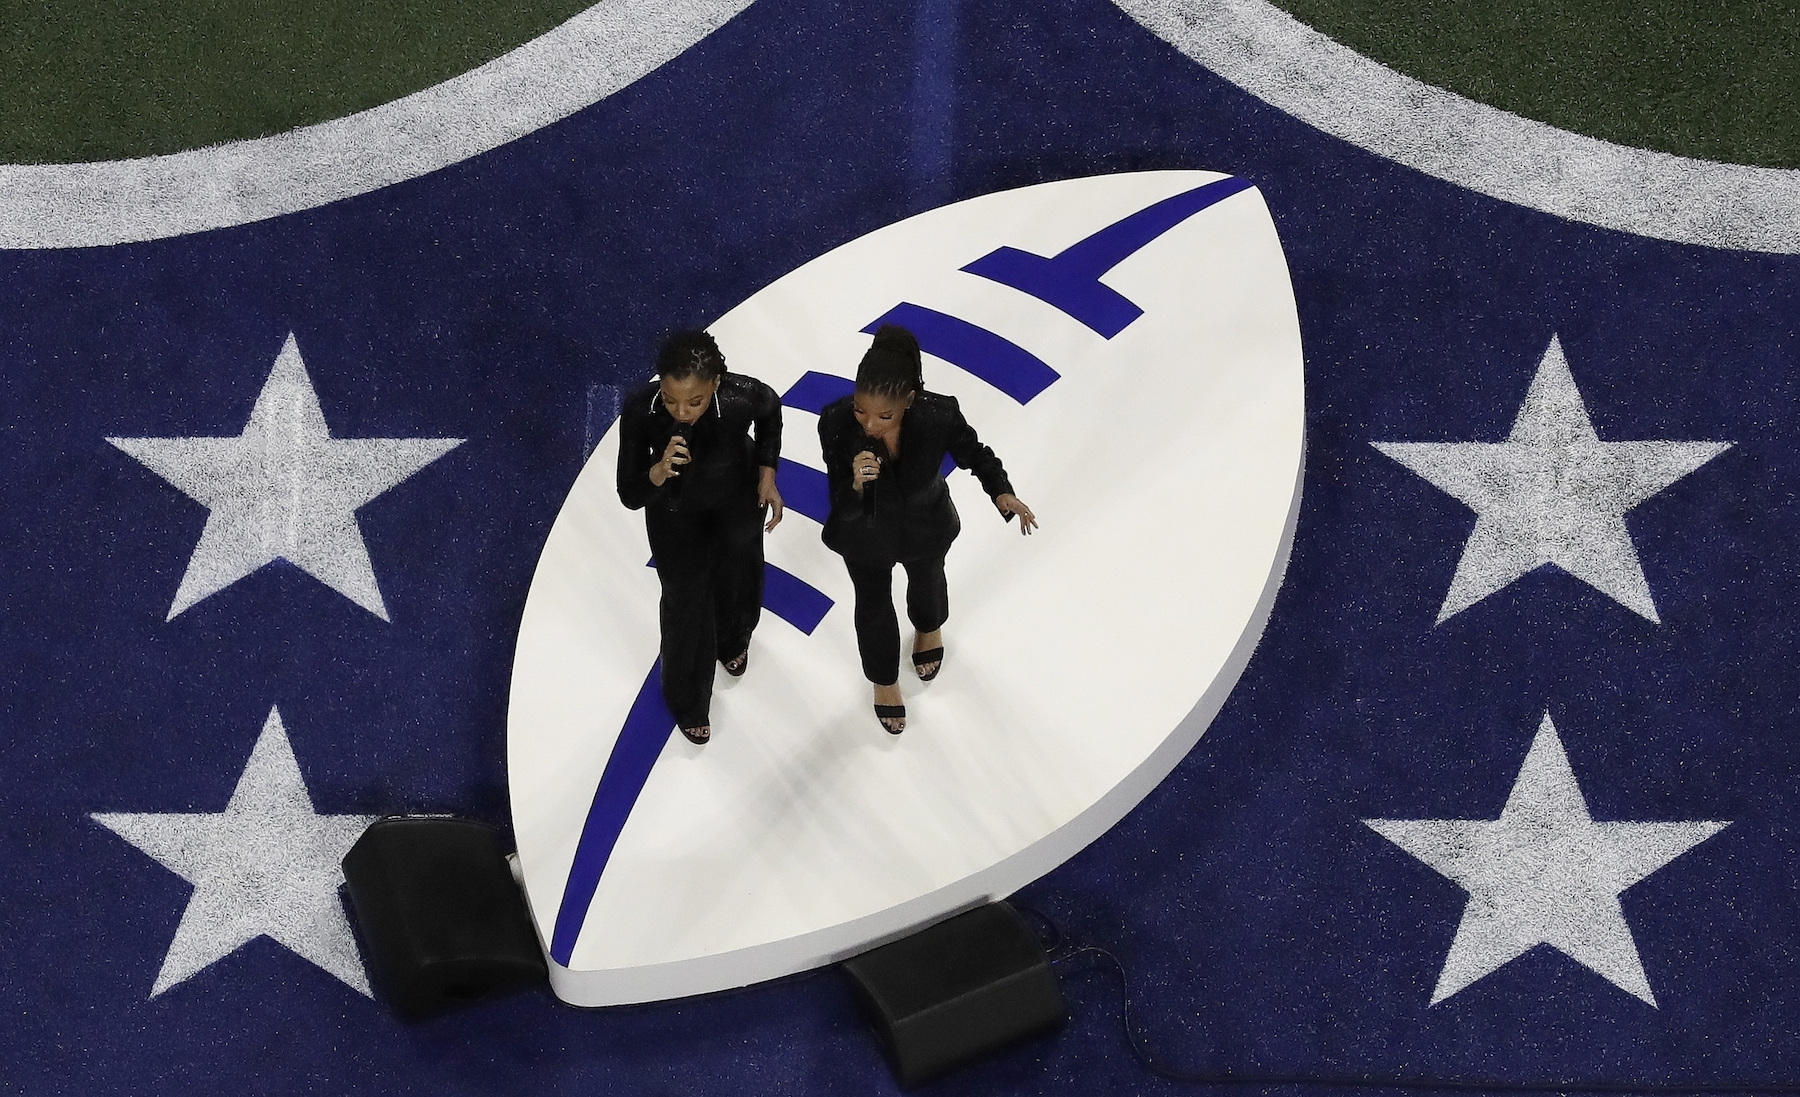 """<div class=""""meta image-caption""""><div class=""""origin-logo origin-image ap""""><span>AP</span></div><span class=""""caption-text"""">Chloe x Halle performs before the NFL Super Bowl 53 football game between the Los Angeles Rams and the New England Patriots Sunday, Feb. 3, 2019, in Atlanta. (AP Photo/Morry Gash)</span></div>"""